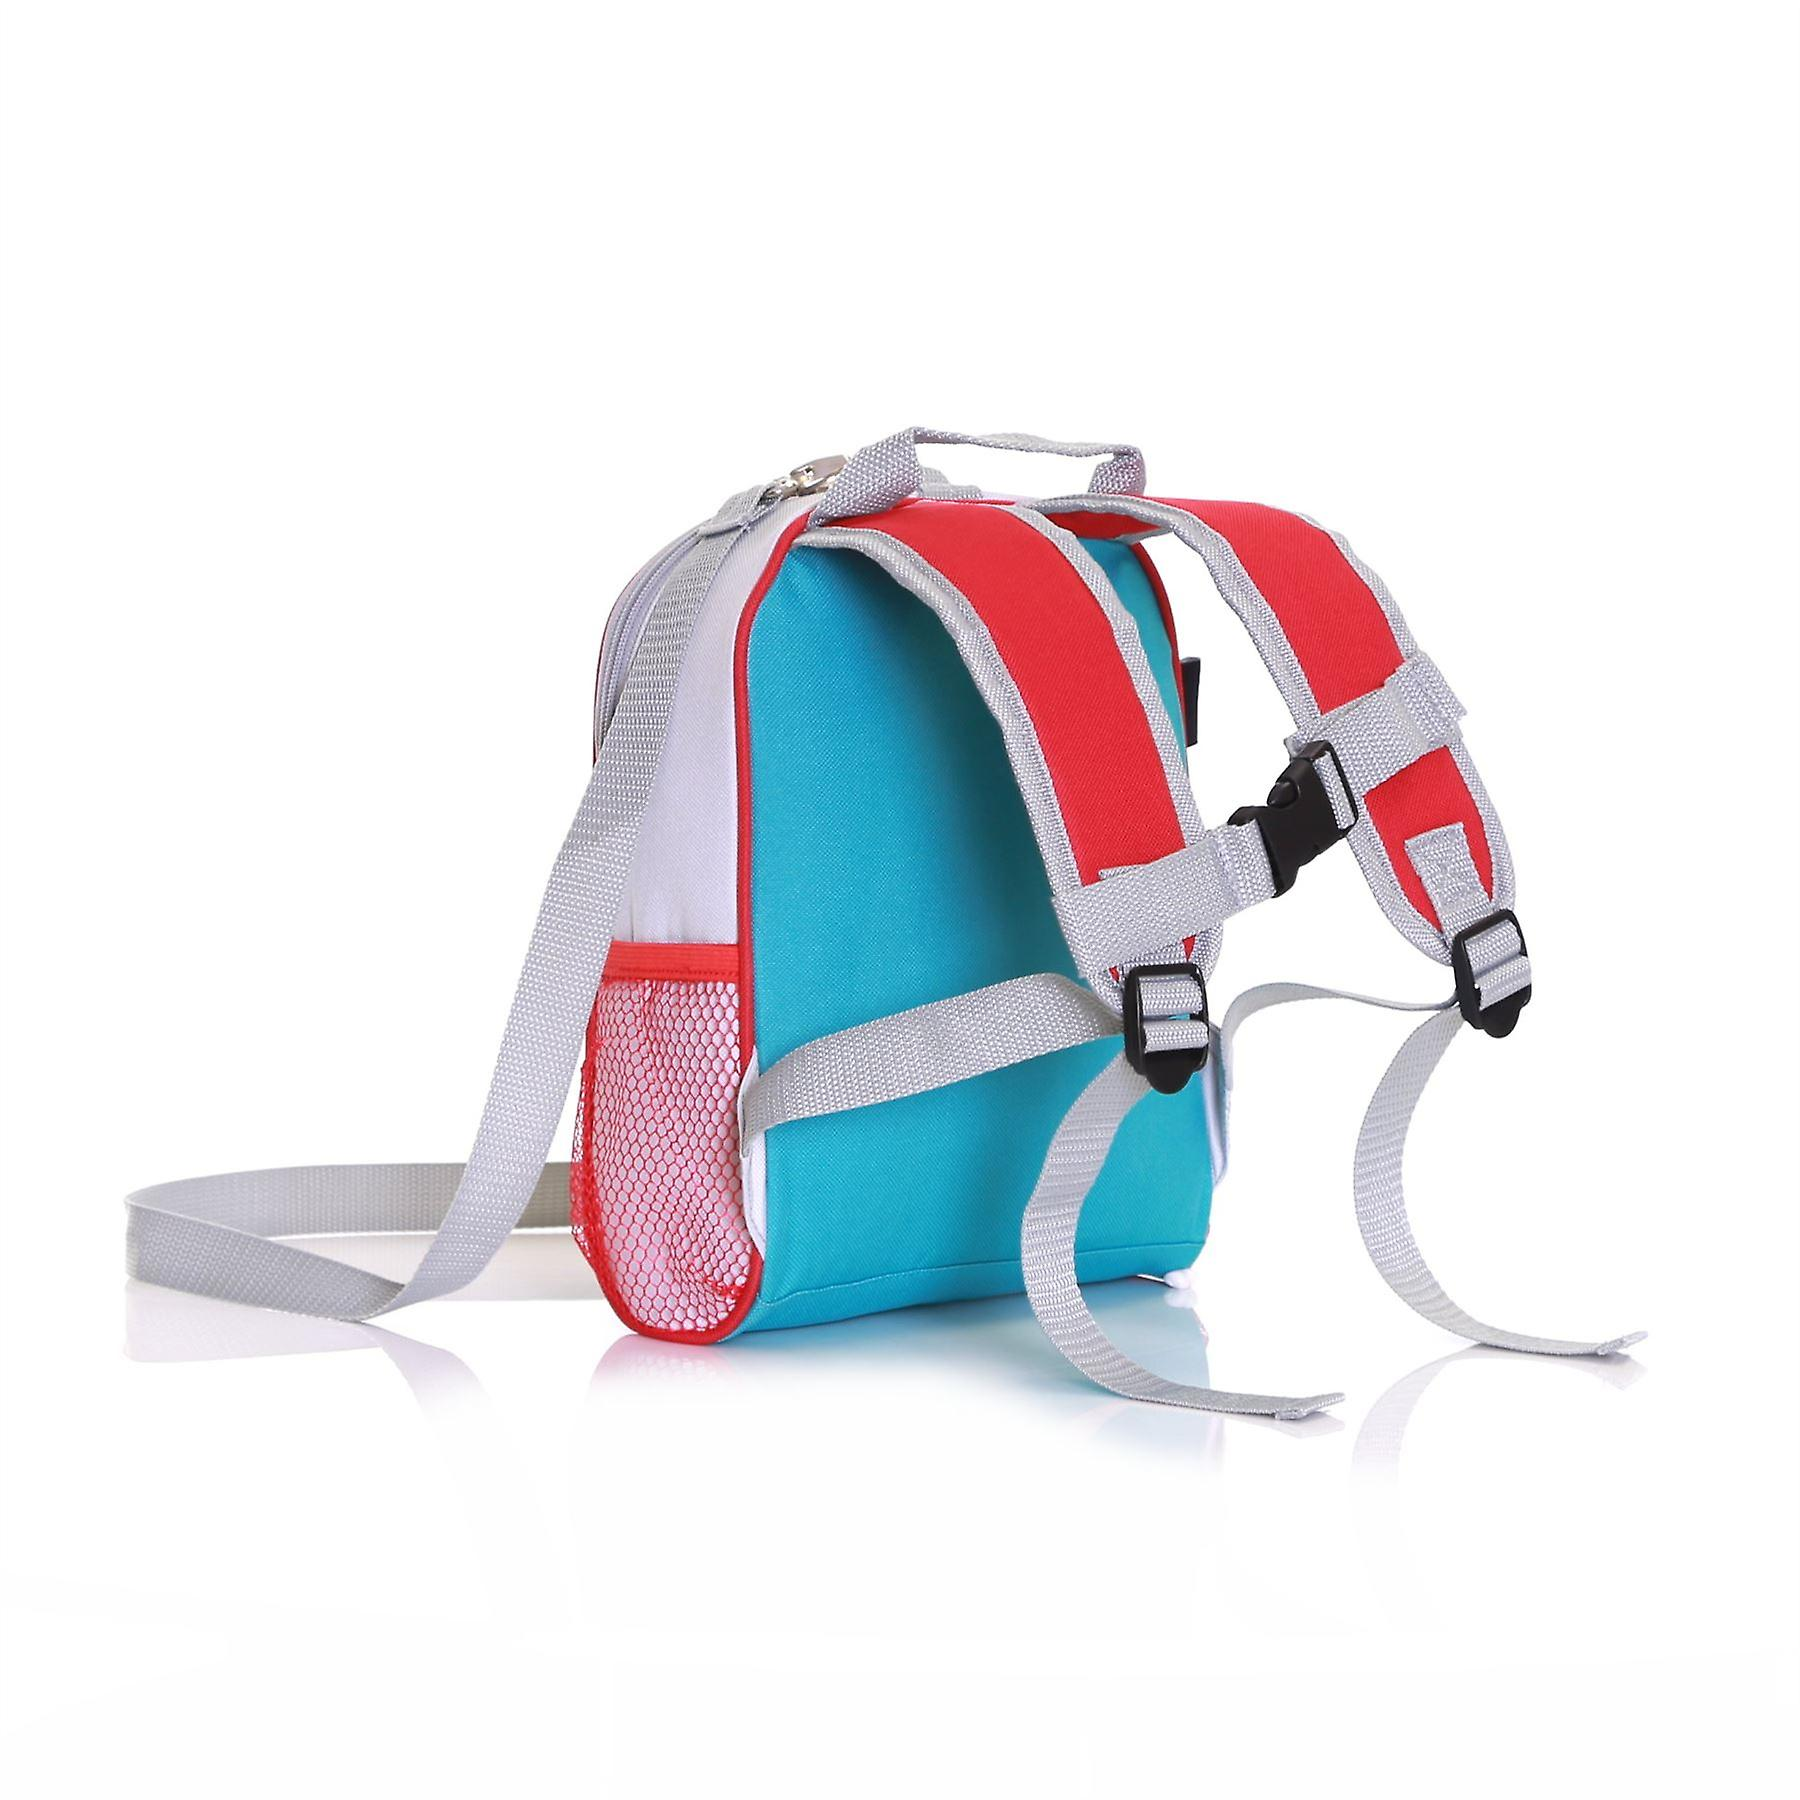 Wobbly Forest Teddy Toddler Backpack With Safety Rein, Turquoise/Red